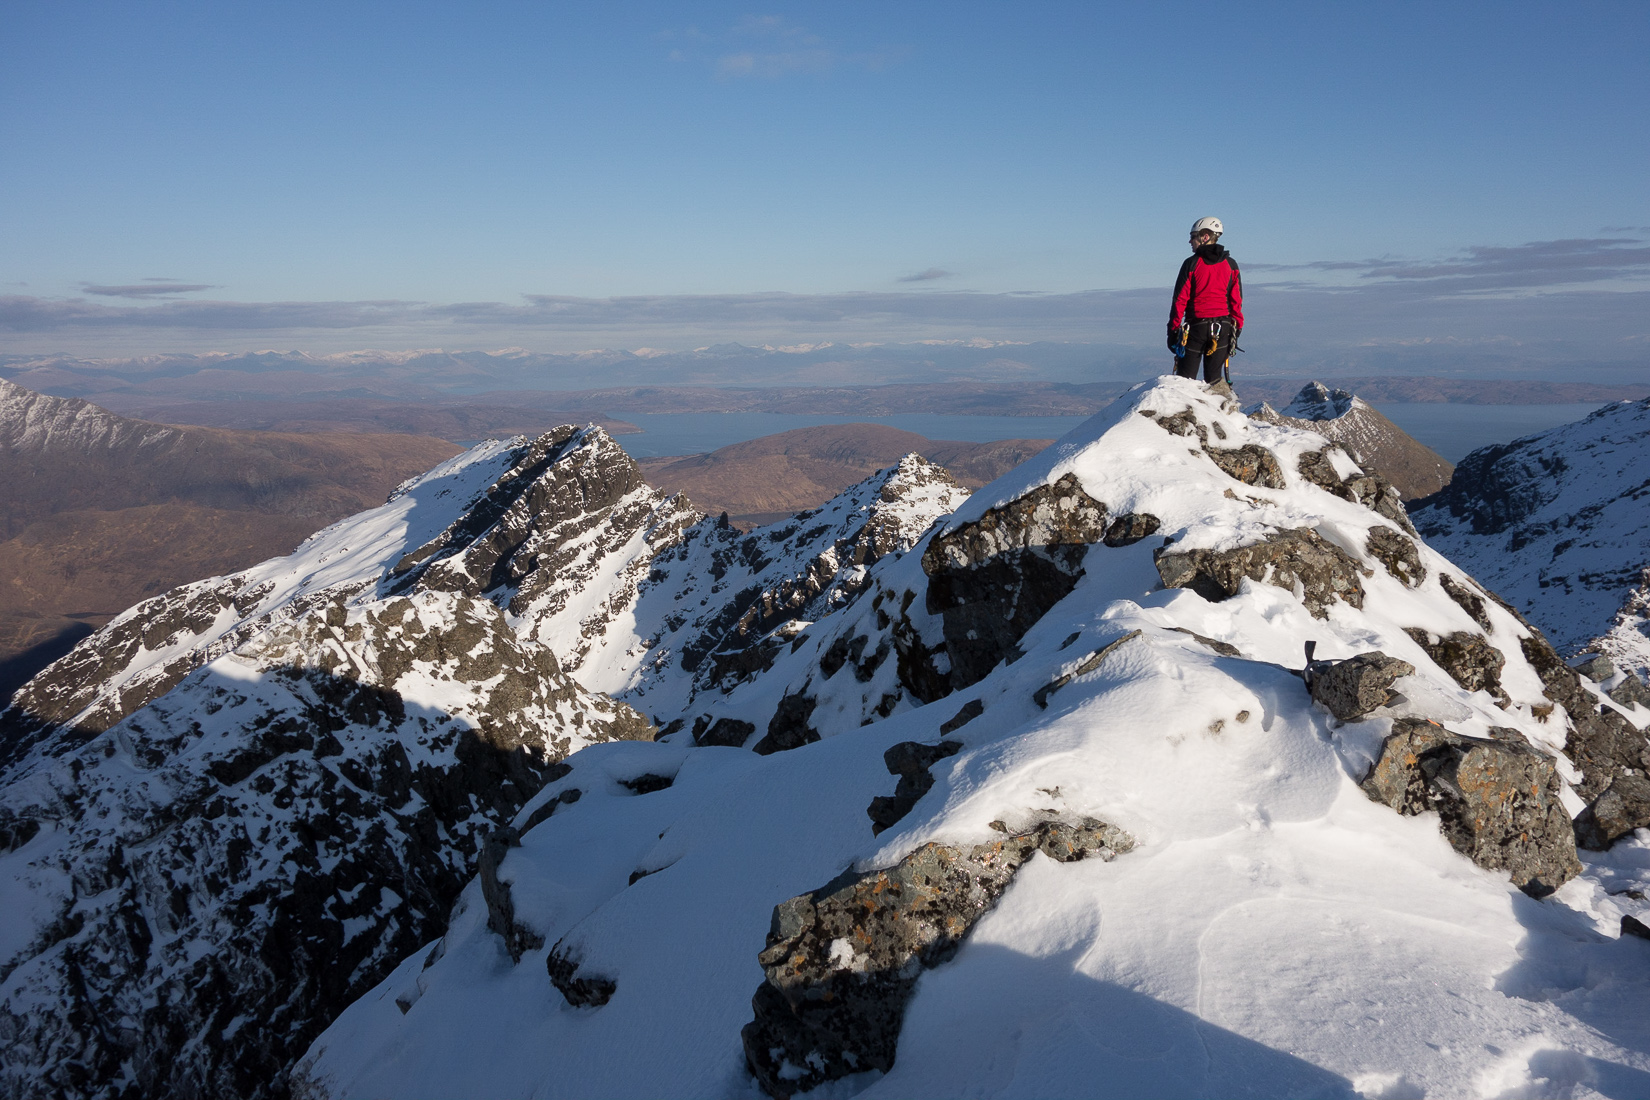 On the summit of Sgurr Alasdair